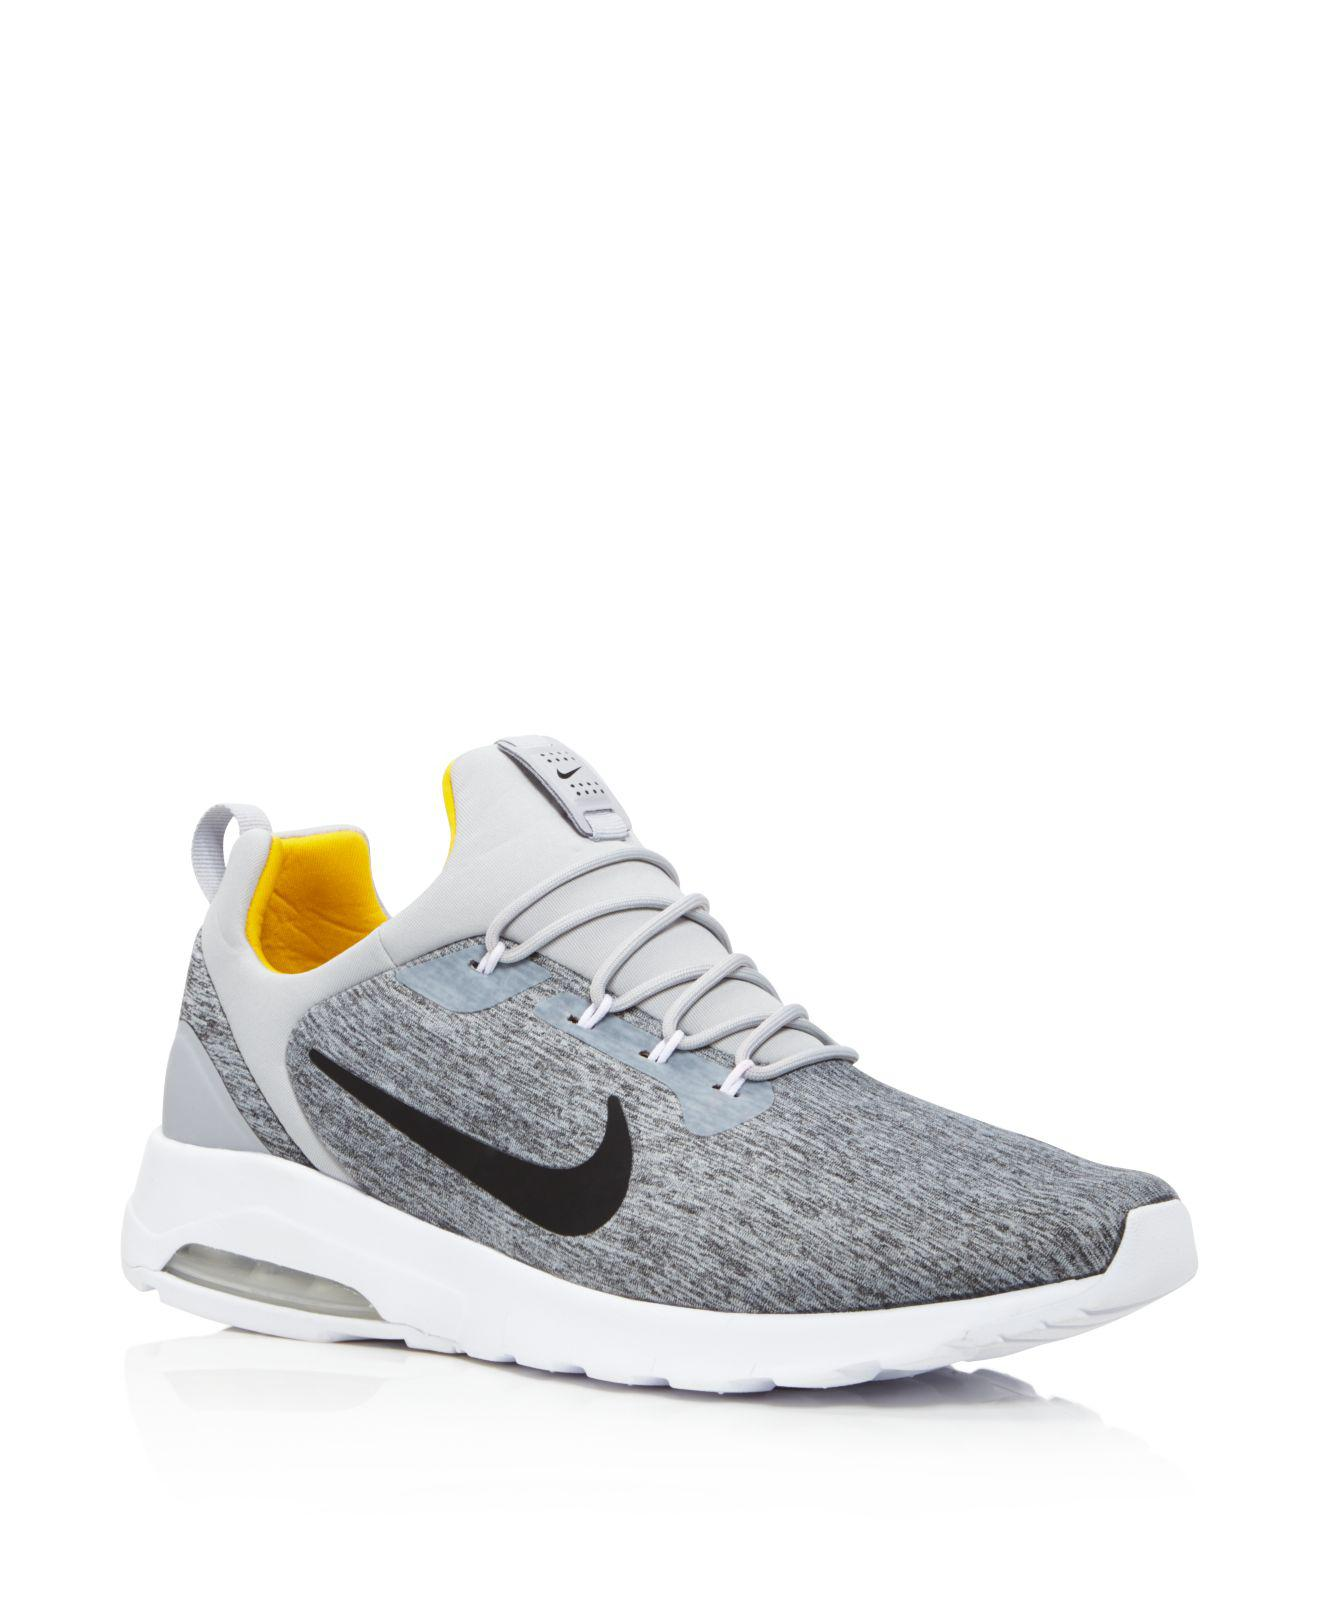 27bfa0840ae36 ... where to buy lyst nike mens air max motion racer sneakers in gray for  men 47b96